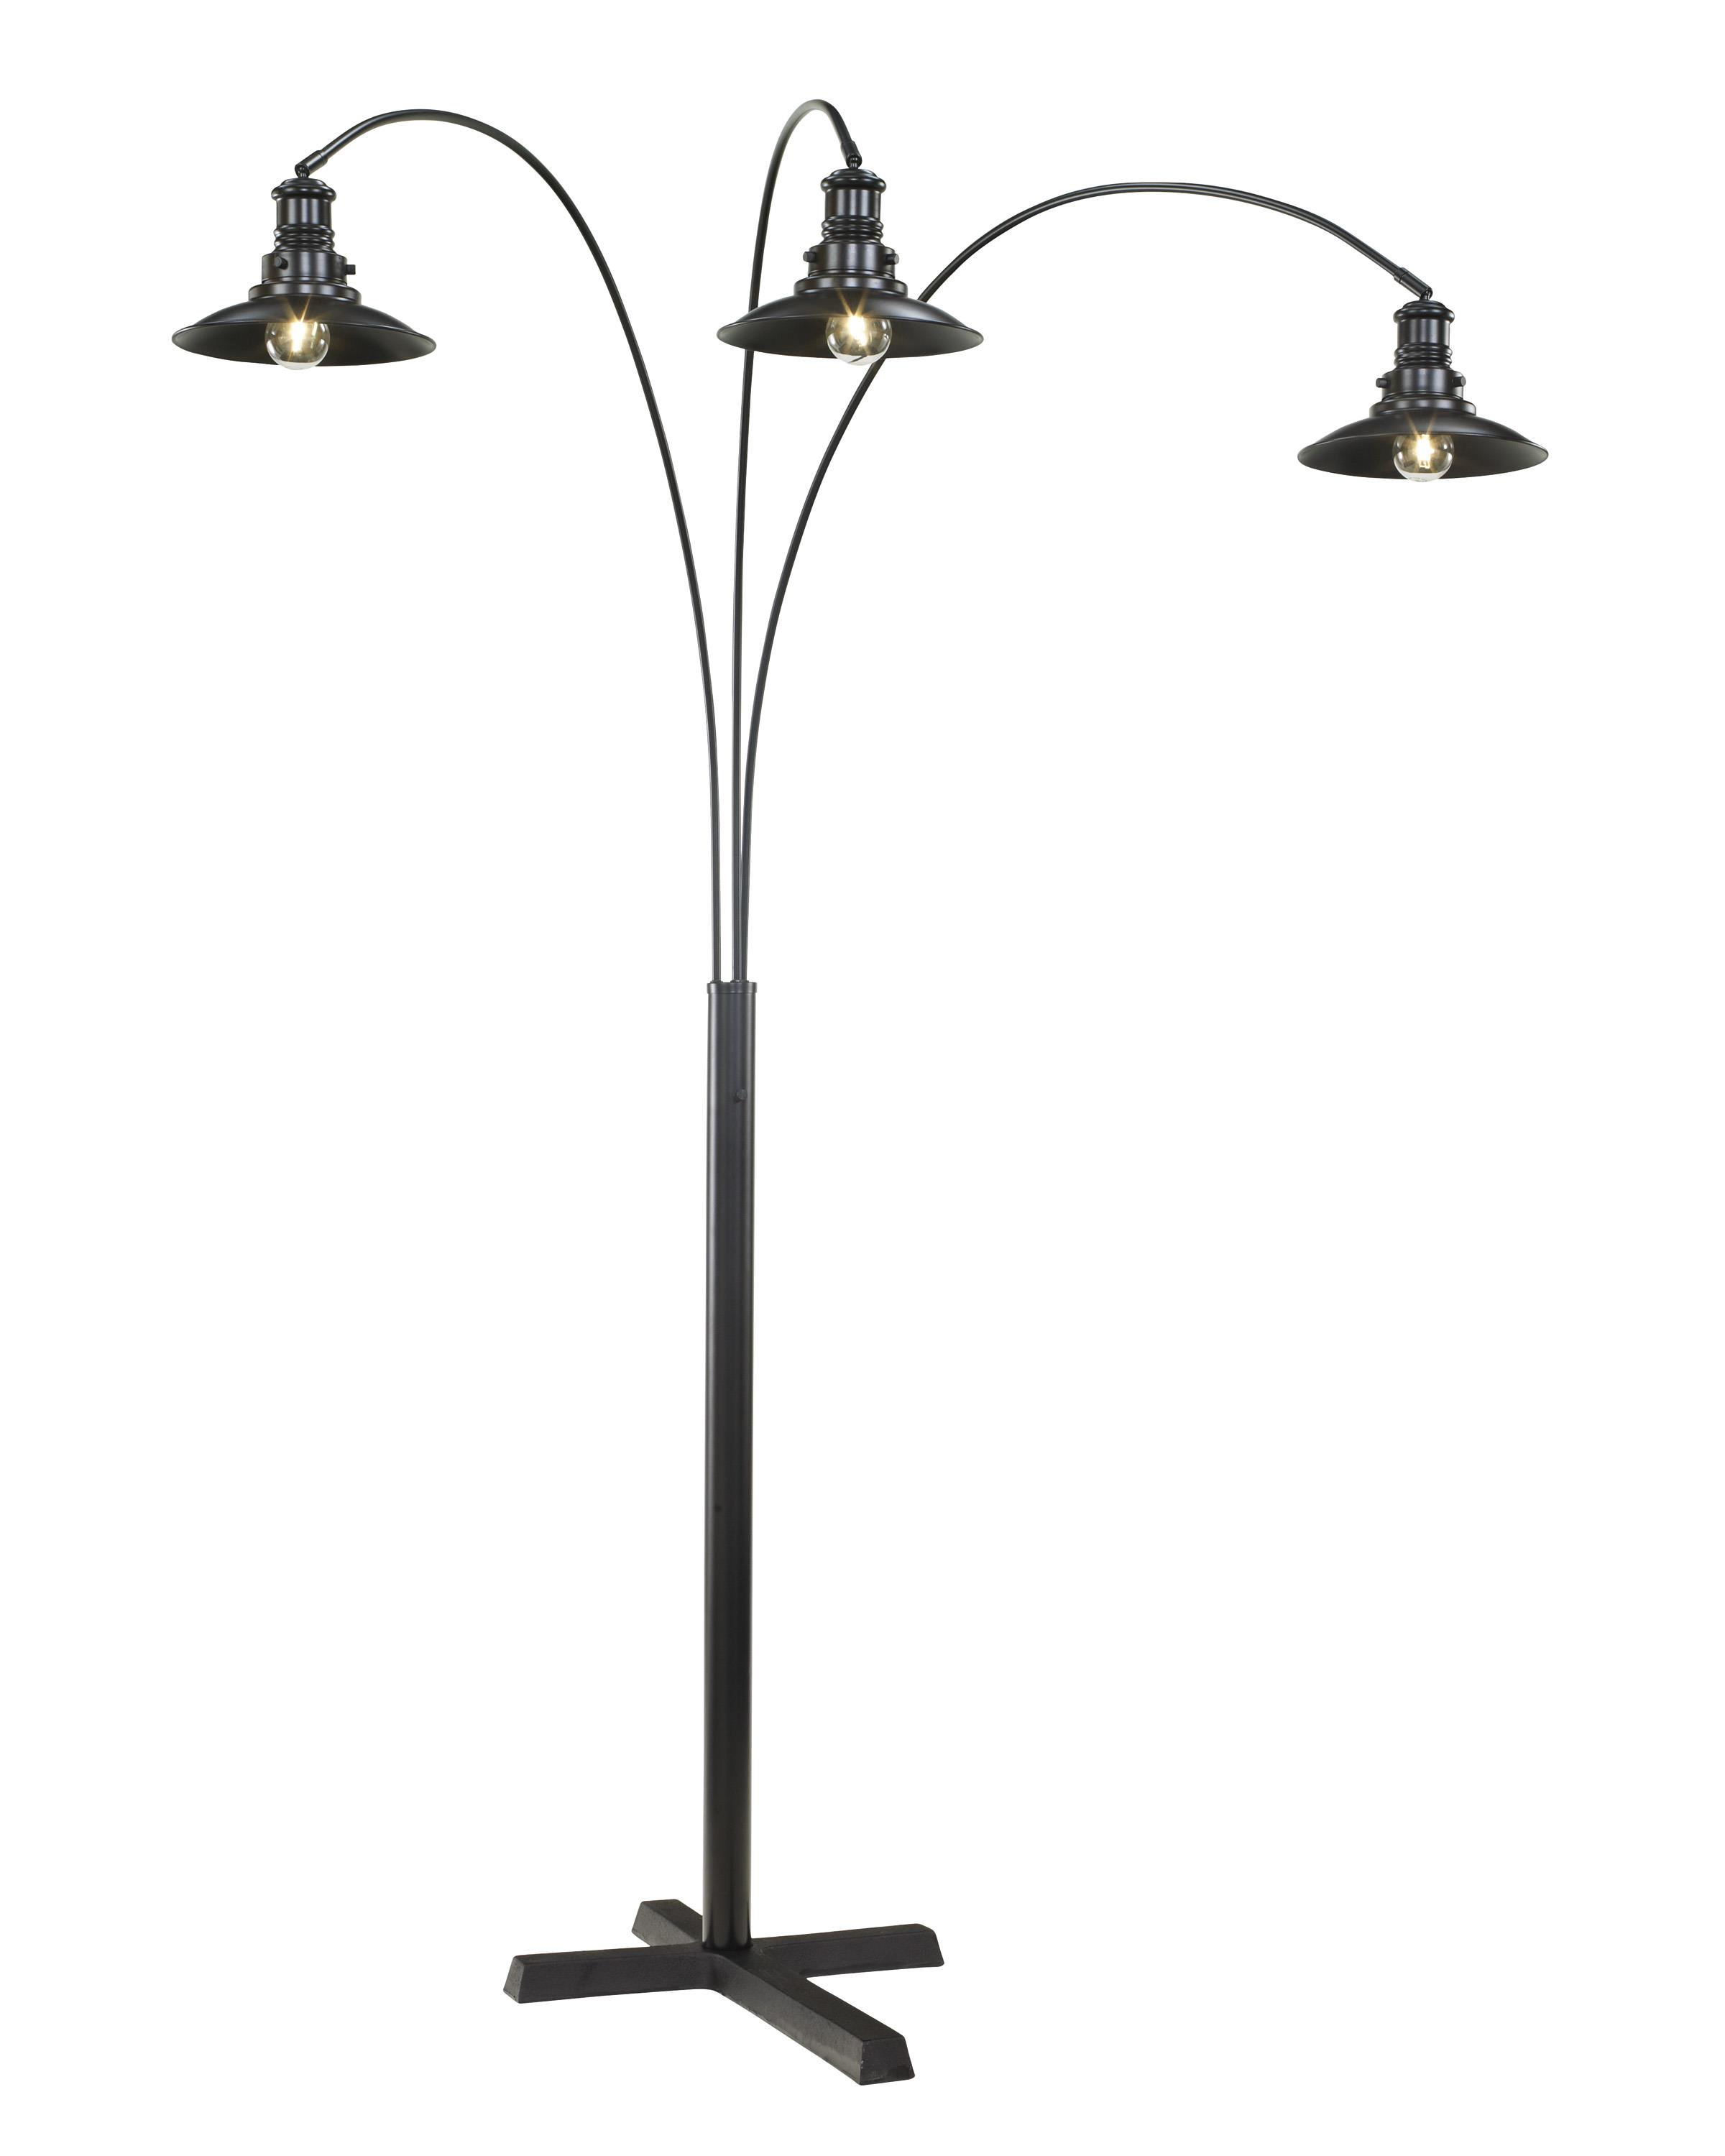 Lamps - Vintage Style Metal Arc Lamp by Vendor 3 at Becker Furniture